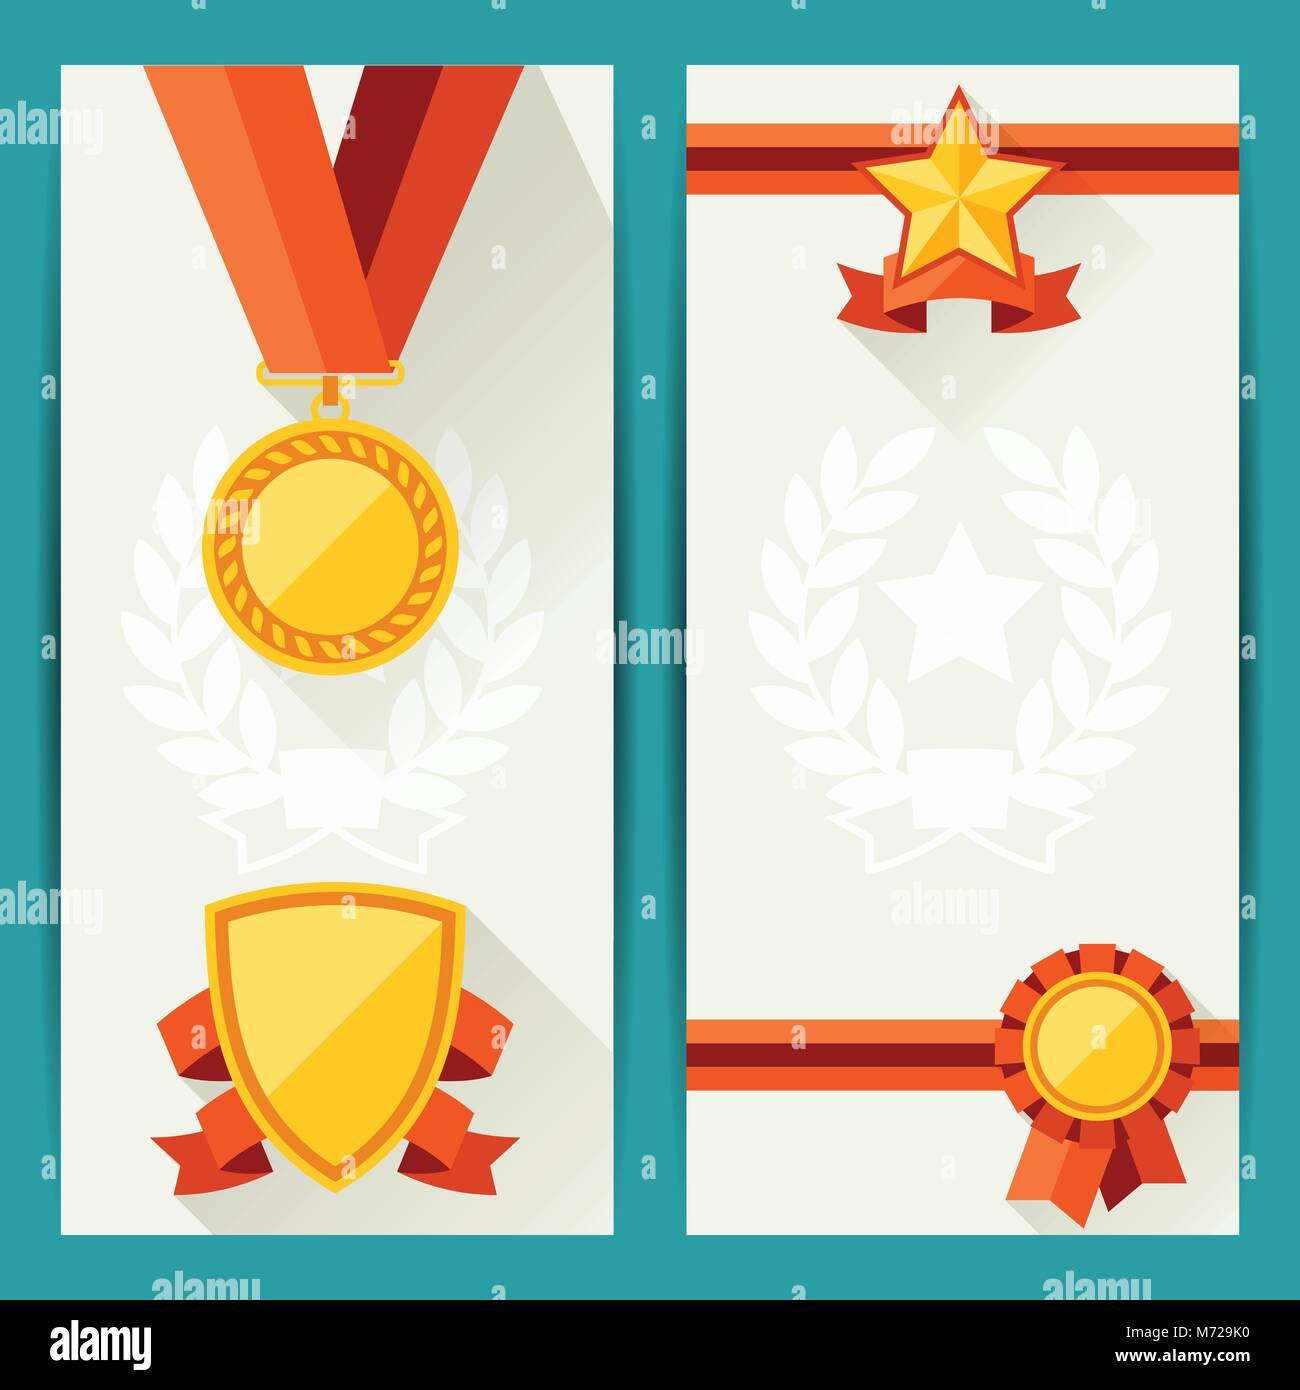 Certificate Icon In Simple Style Stockfotos & Certificate Icon In ...